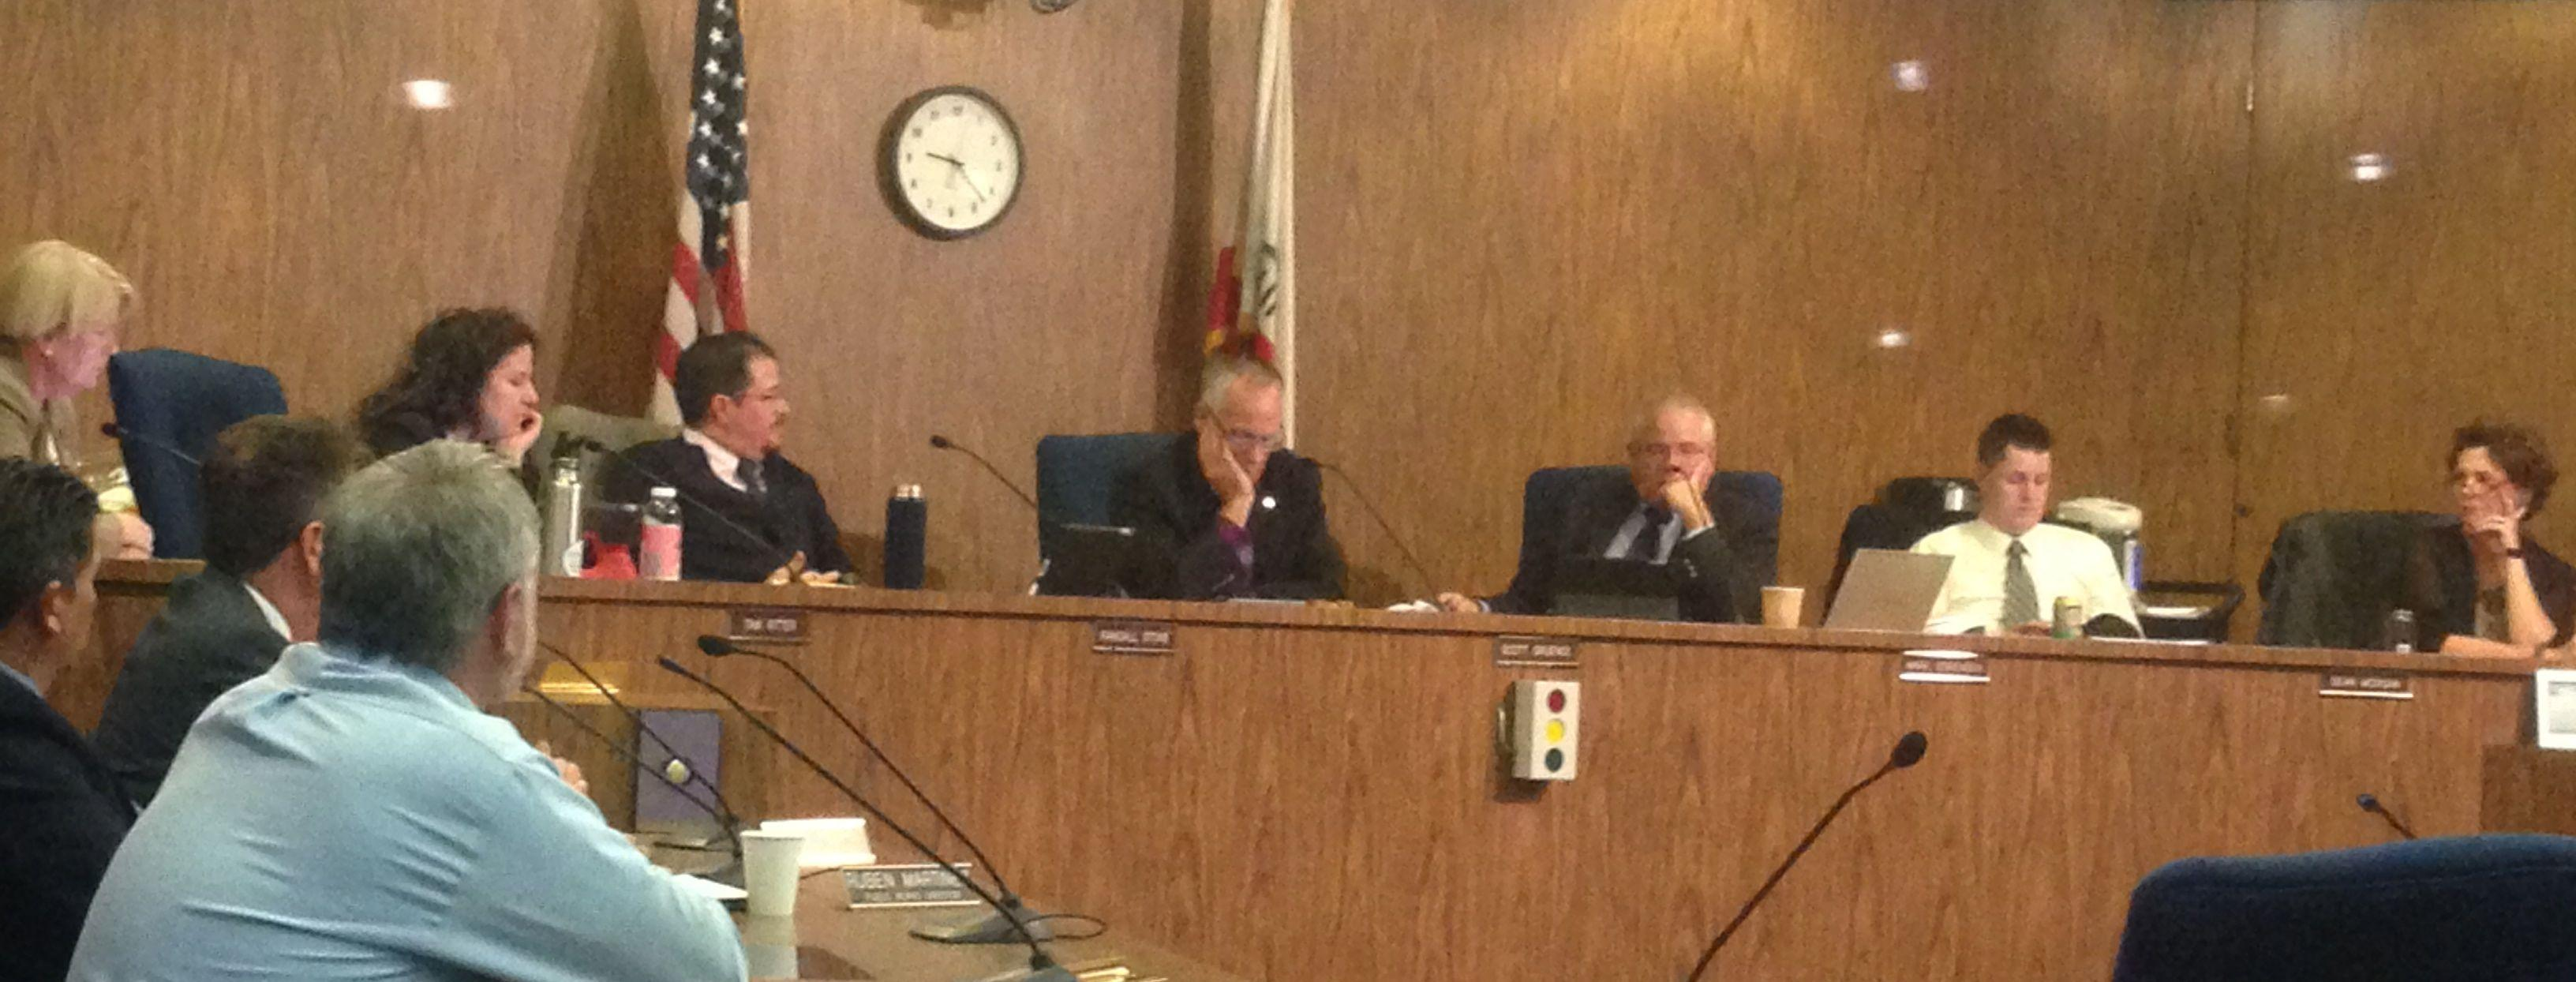 City financial audit delayed